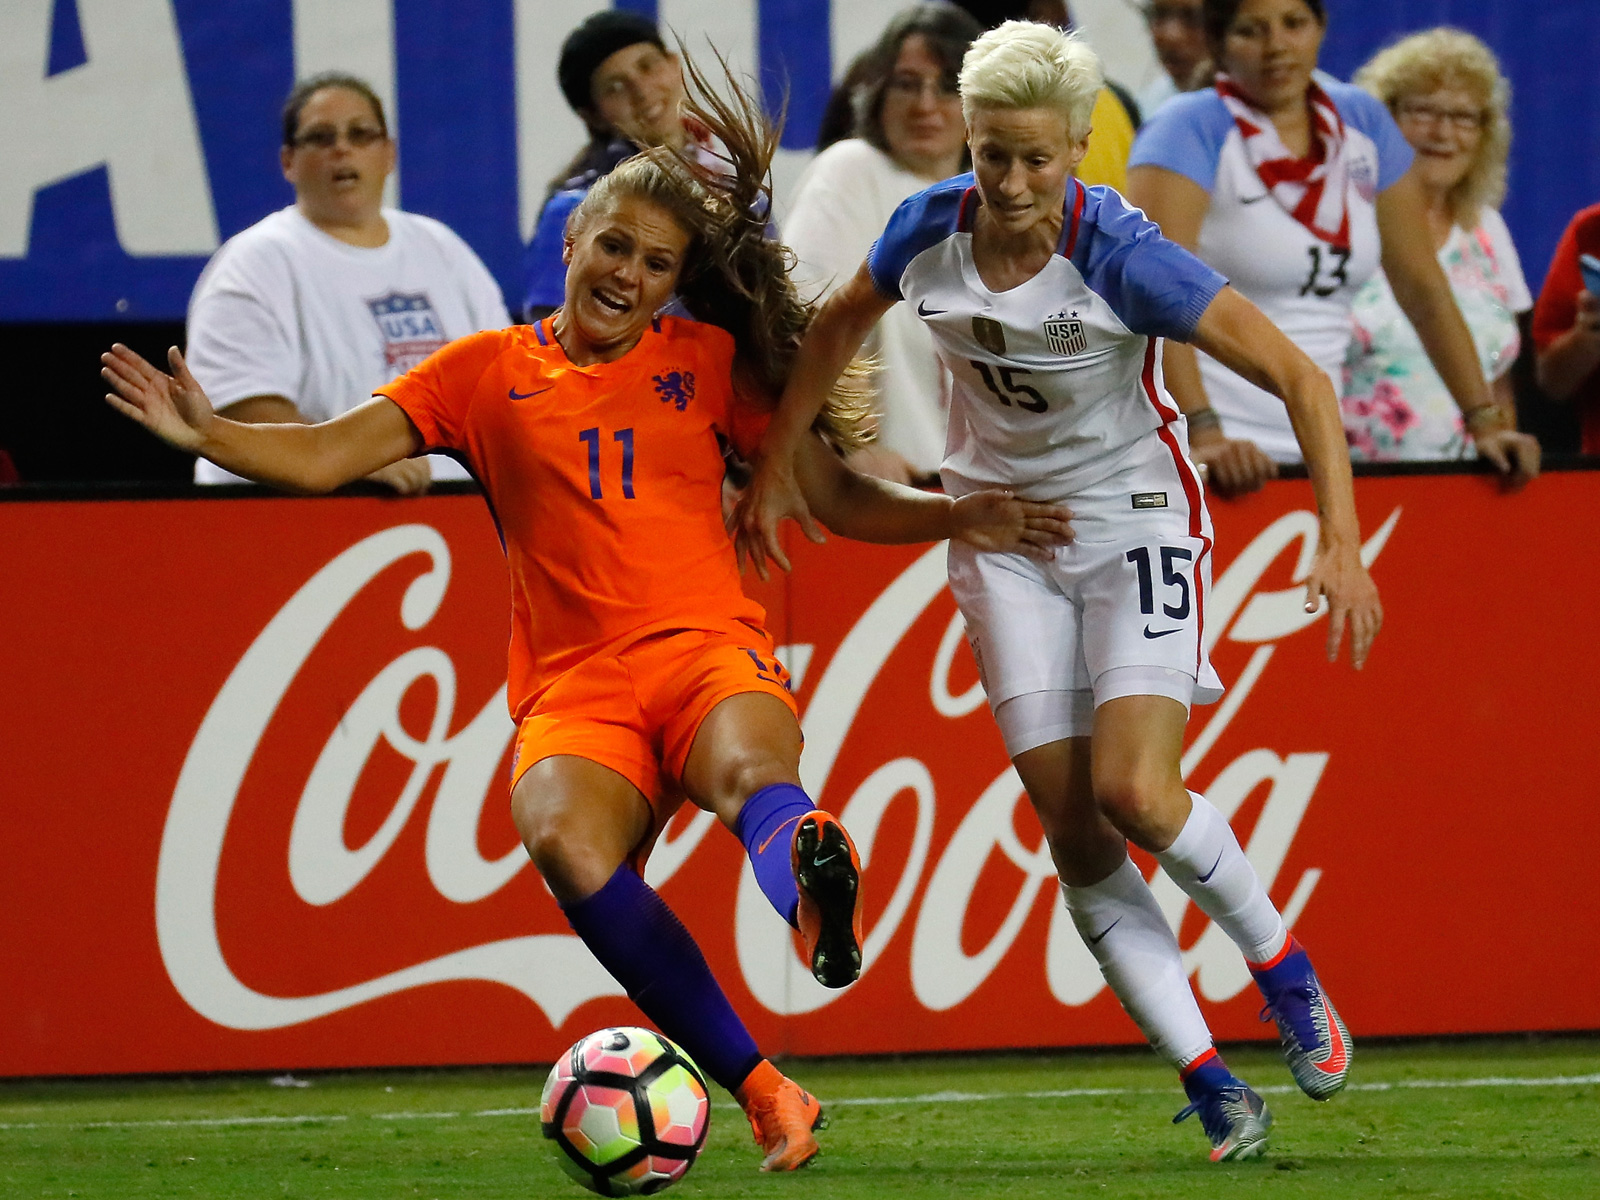 The USA will face the Netherlands in the Women's World Cup final